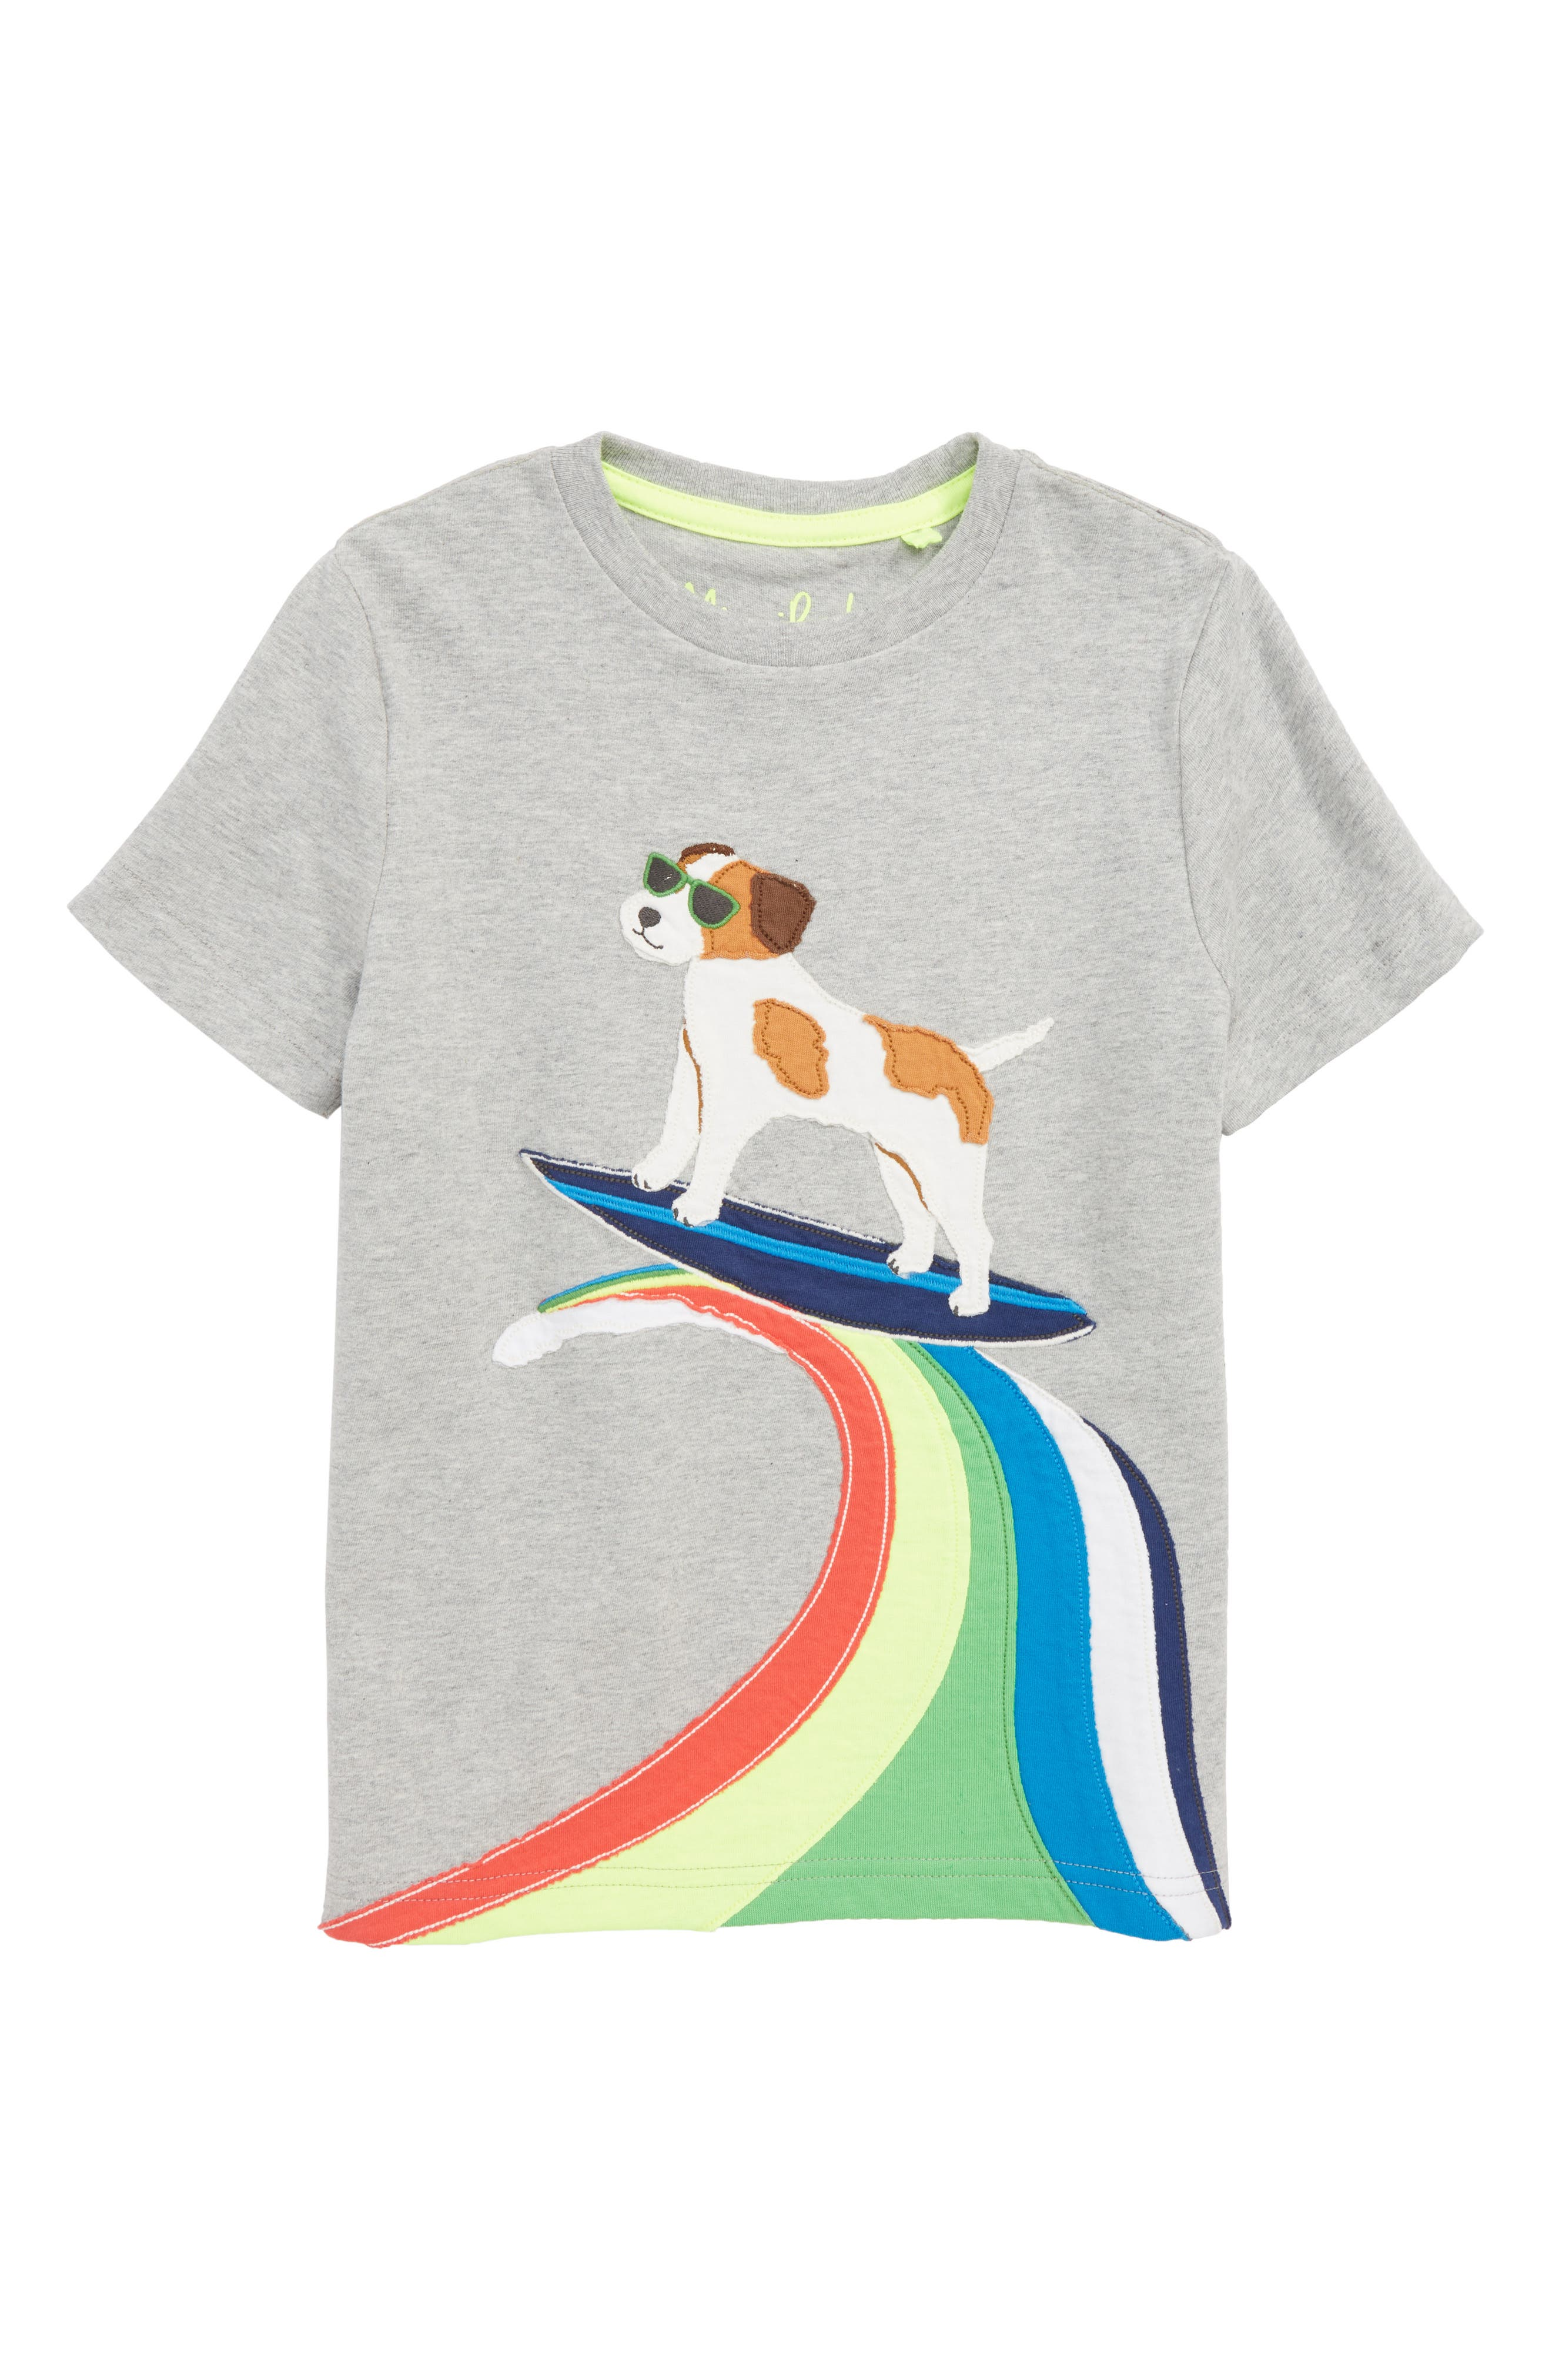 MINI BODEN,                             Action Appliqué T-Shirt,                             Main thumbnail 1, color,                             034